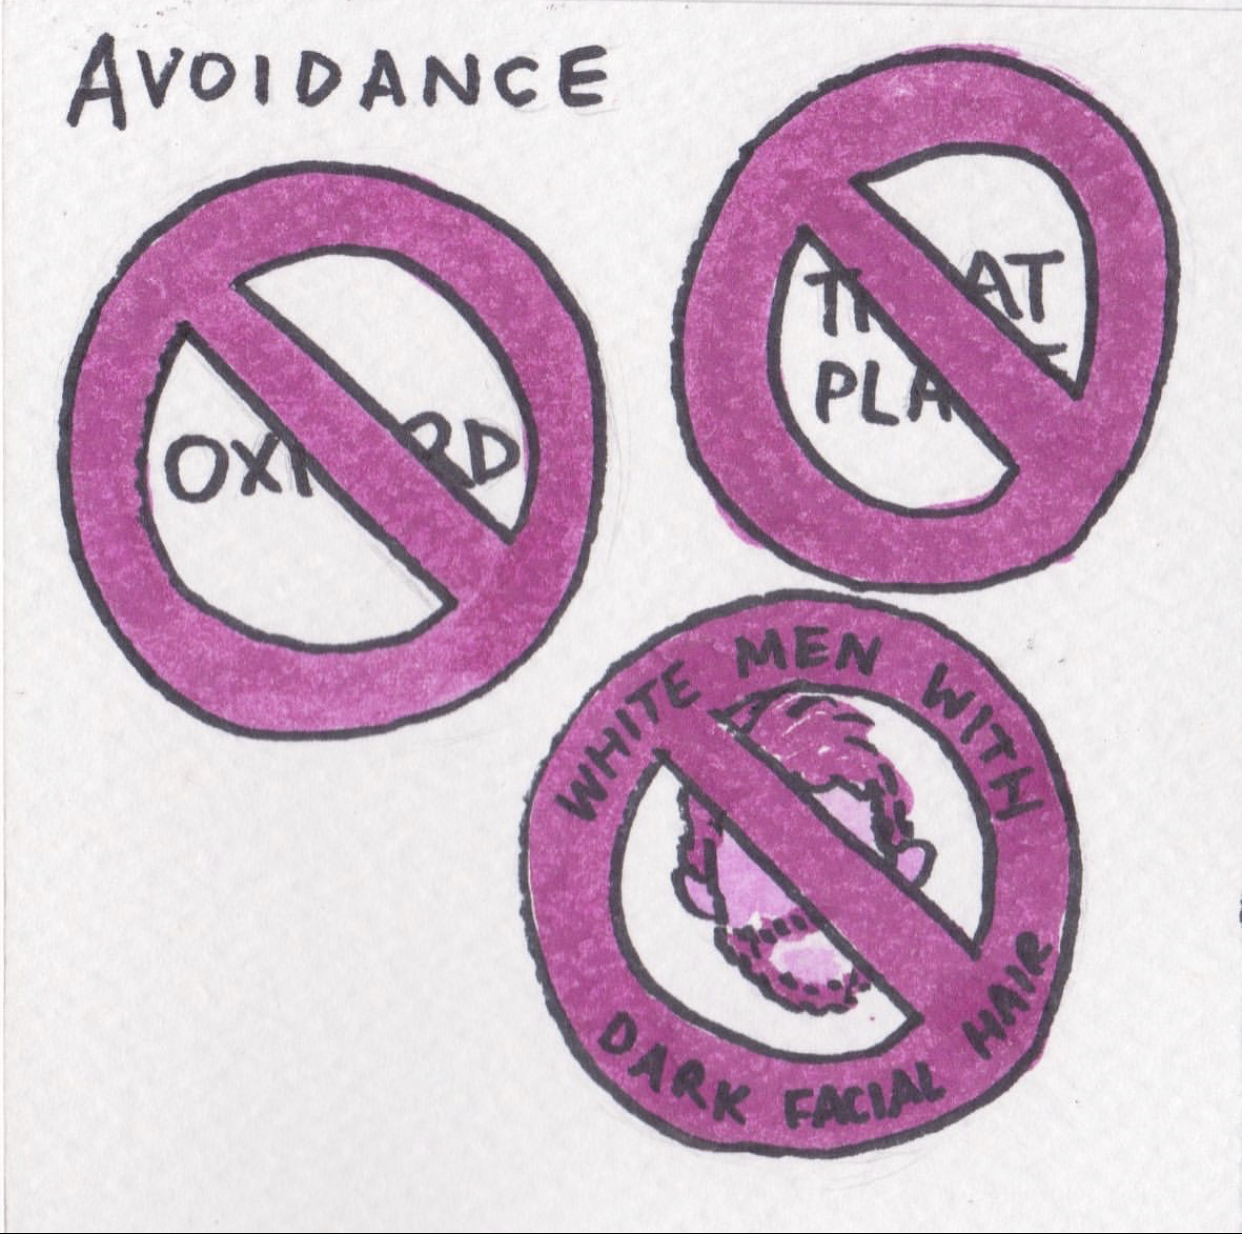 """Elyssa's illustrated comic of PTSD, drawn in ink and coloured in shades of pink and magenta watercolour paint. This image is titled """"Avoidance"""" and shows three stop signs. In the centre of the first, it says """"Oxford,"""" partially obscured by the line through the stop sign. In the second, it says """"That place"""", again, partially obscured by the line through the stop sign. The third shows a cartoon face with a beard but no other features. Around the sign it says, """"White men with dark facial hair."""""""